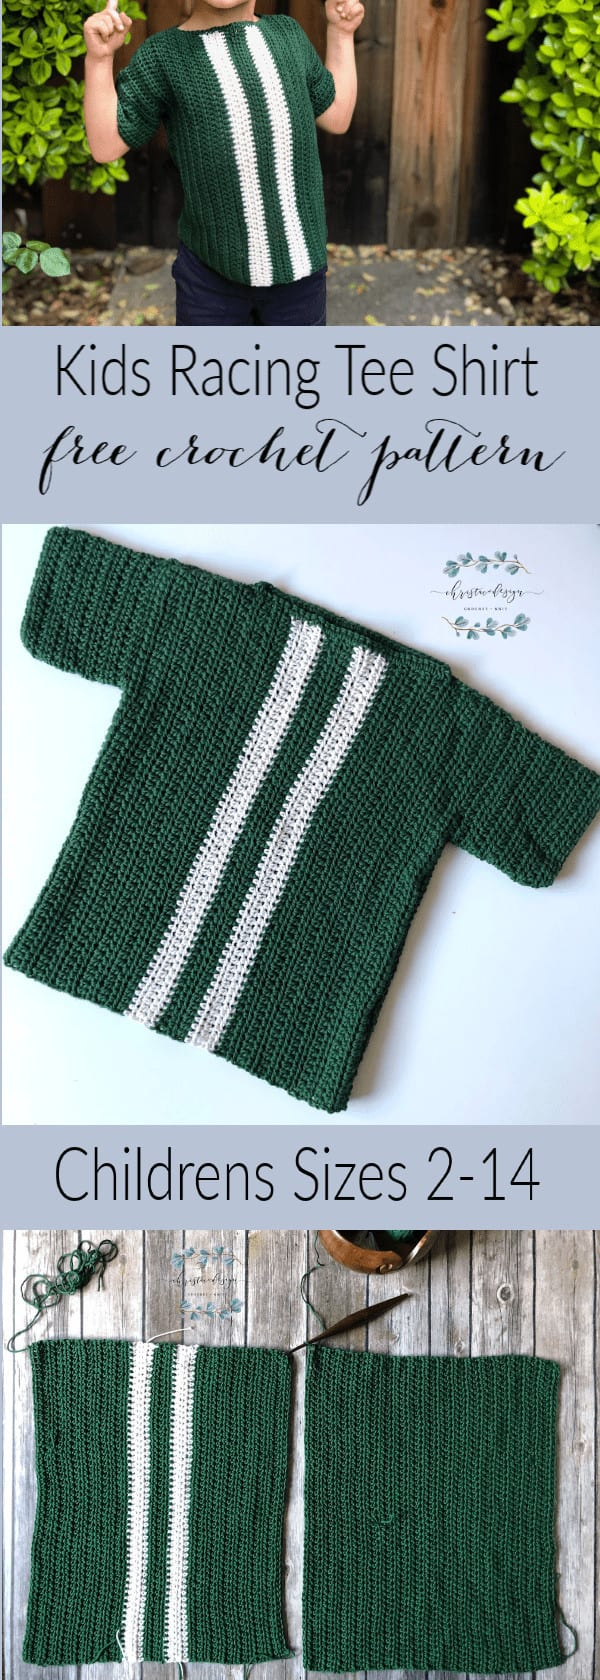 picture of pin image and text for free crochet kids shirt